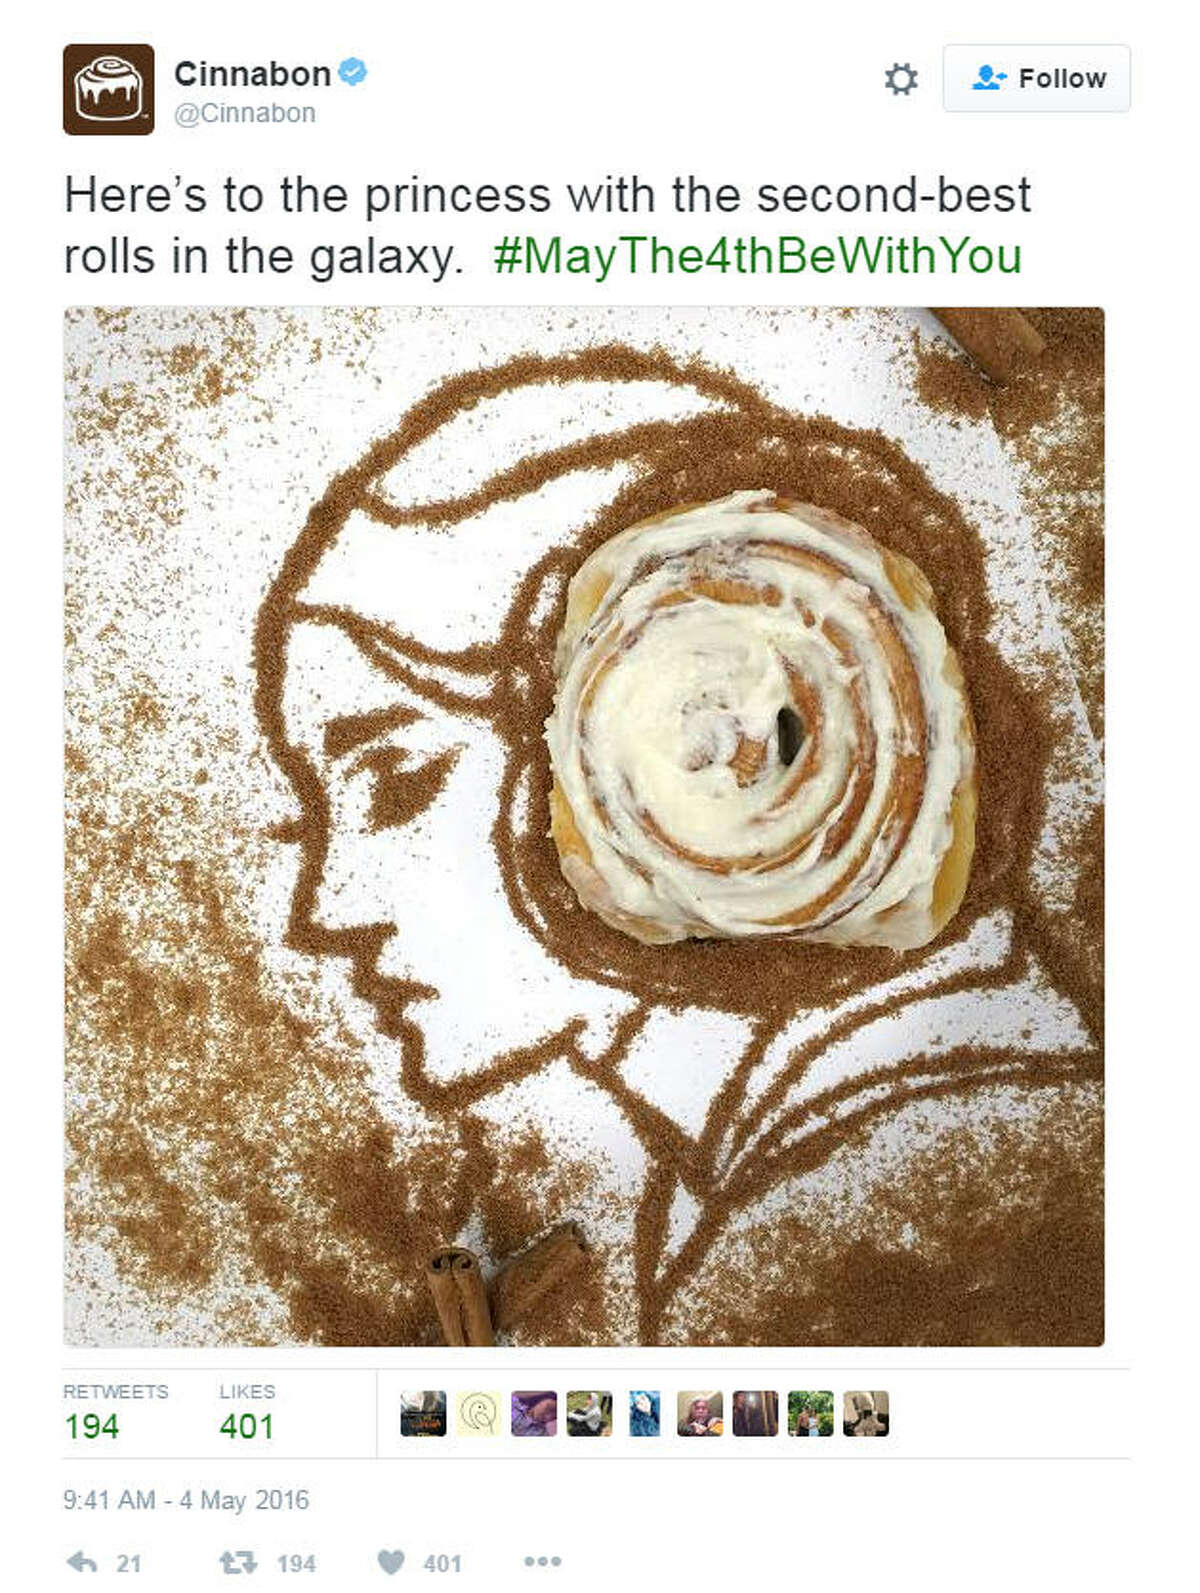 Original tweet Cinnabon had a little fun with actress Carrie Fisher, tweeting out a